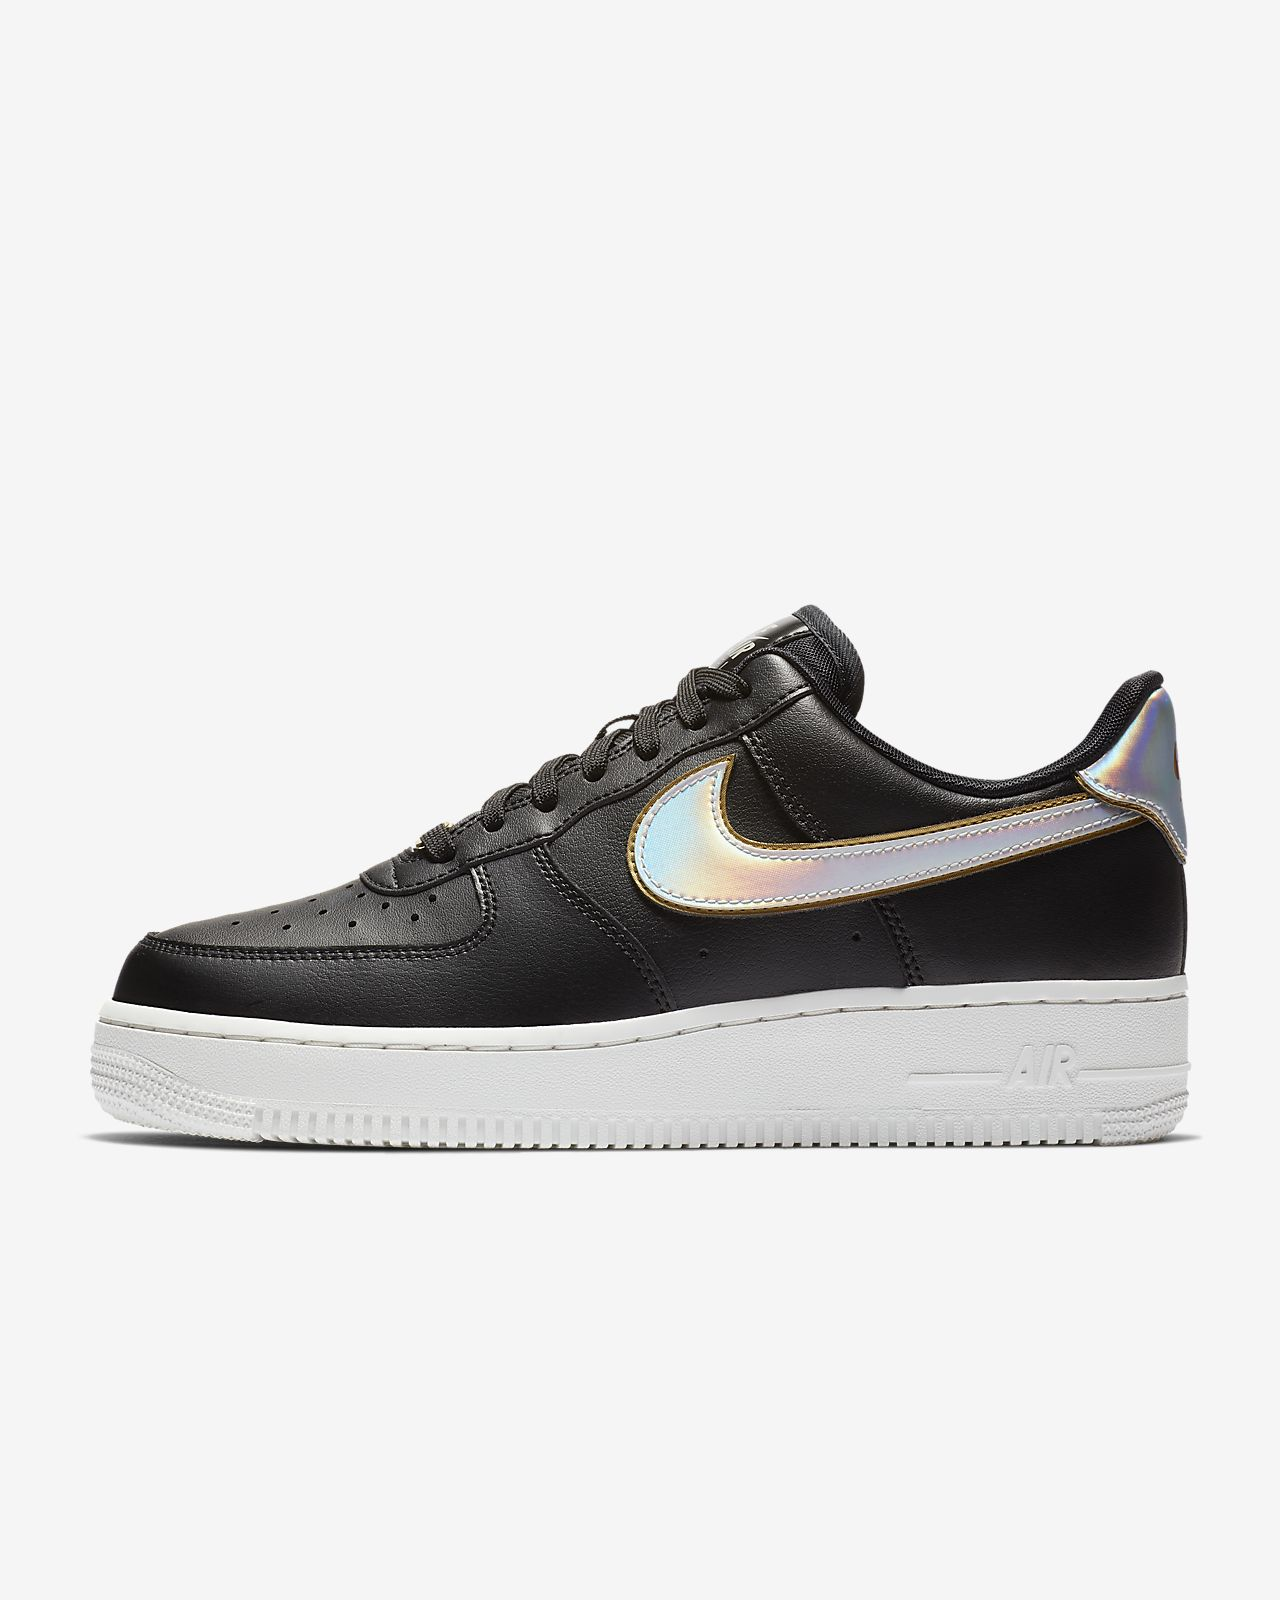 Nike Air Force 1 '07 Metallic Women's Shoe